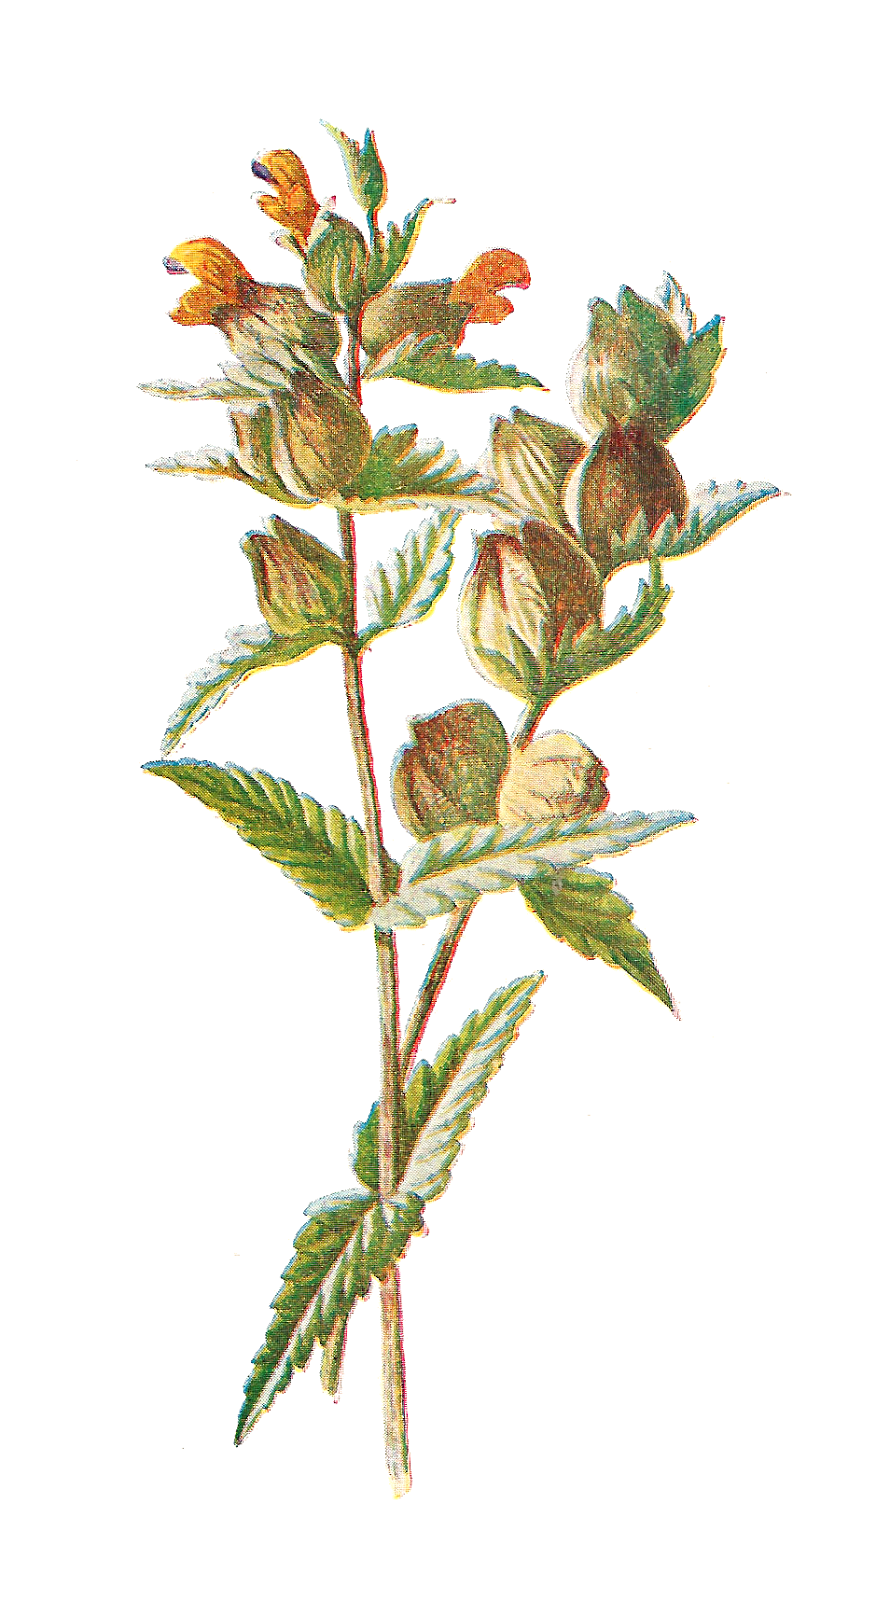 Antique images free digital. Wildflower clipart wild plant graphic library